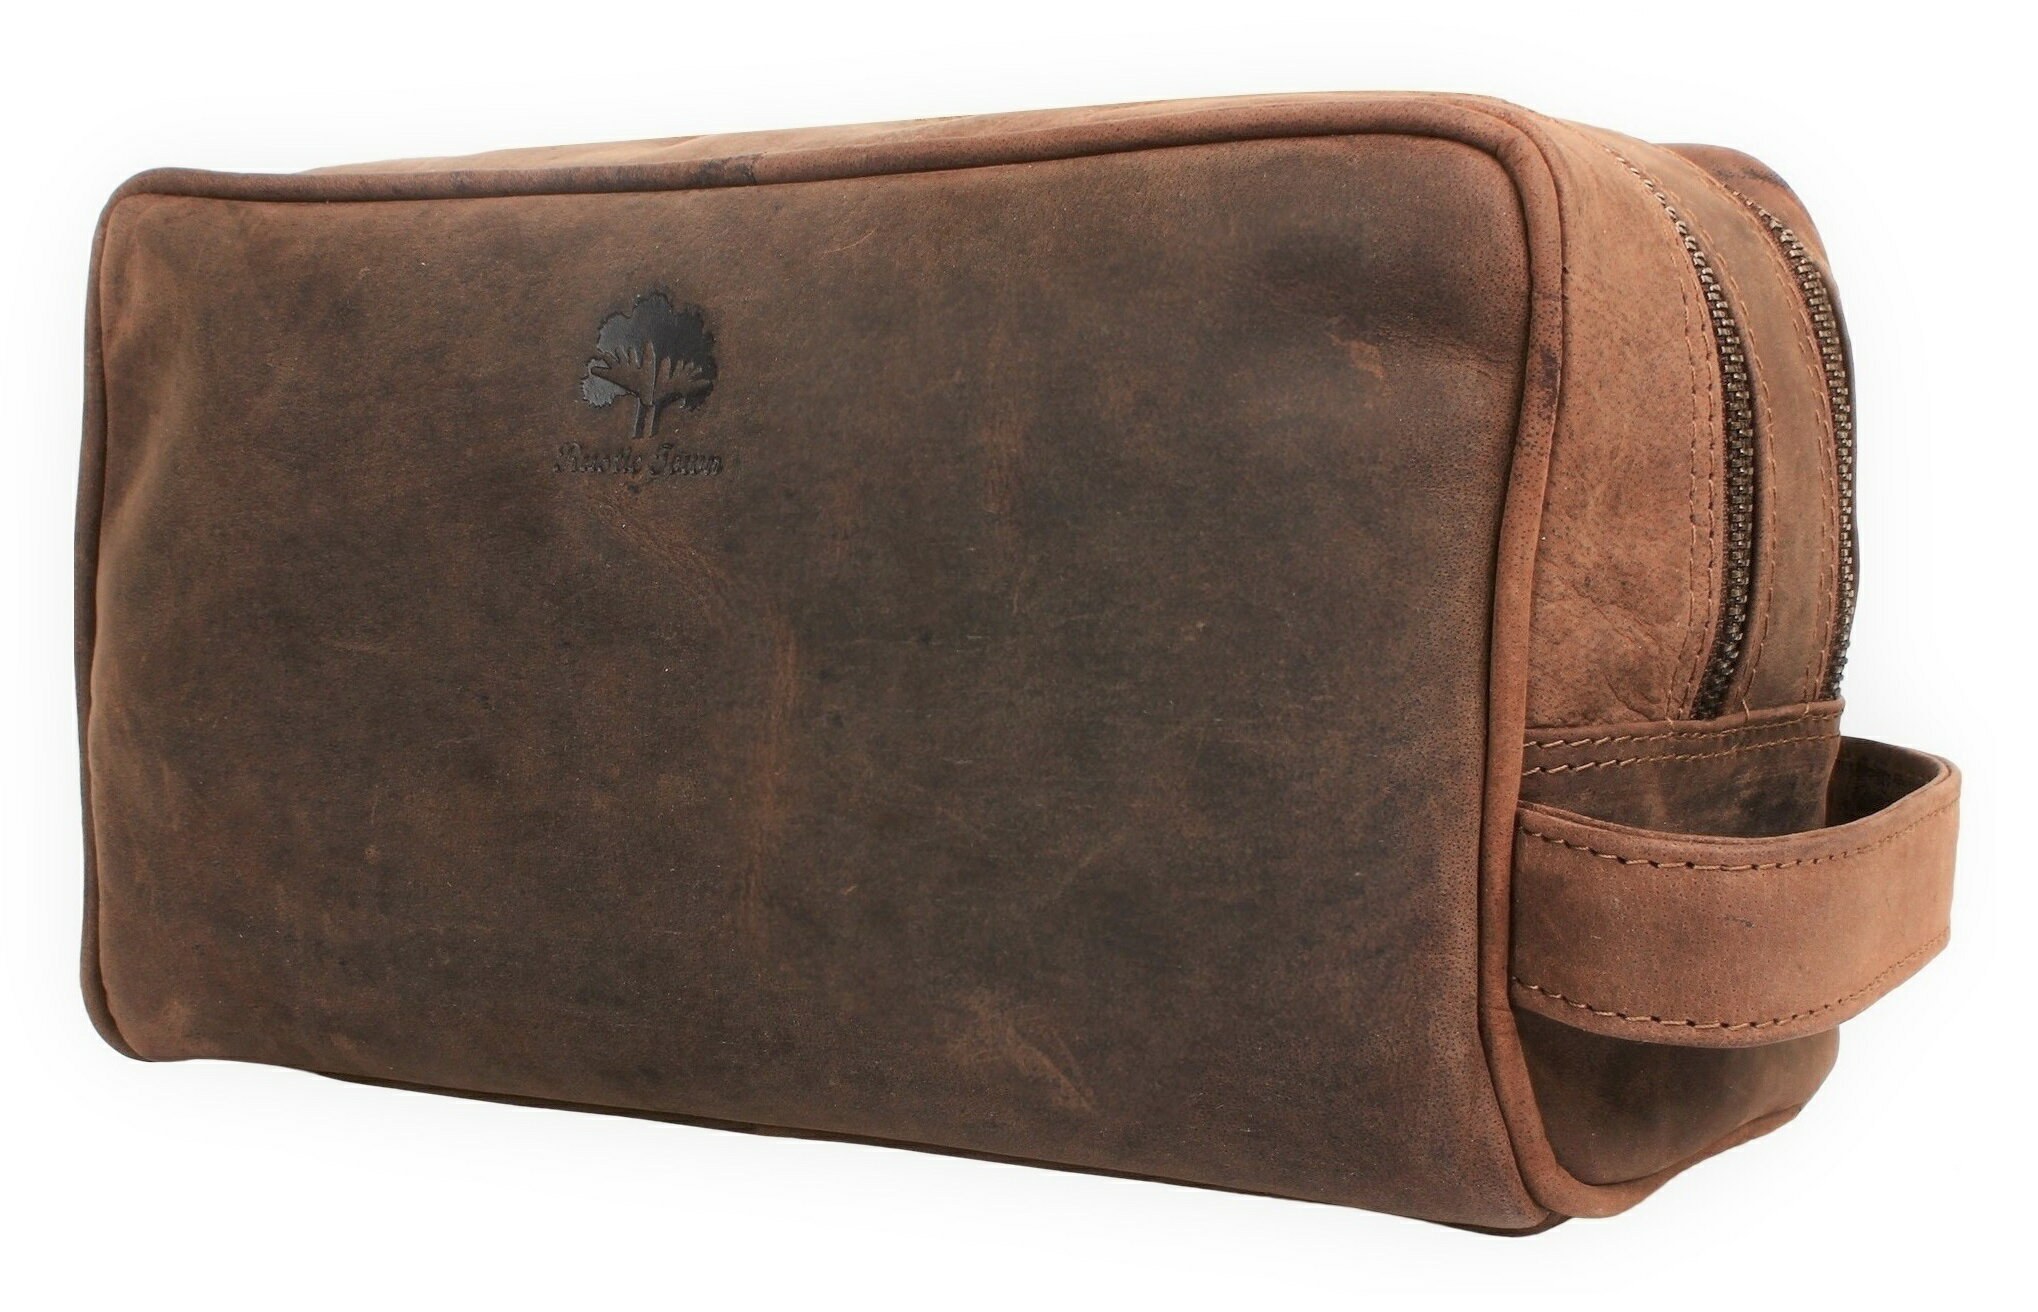 Genuine Leather Travel Toiletry Bag - Dopp Kit Organizer By Rustic Town 0 5874ed7c56430